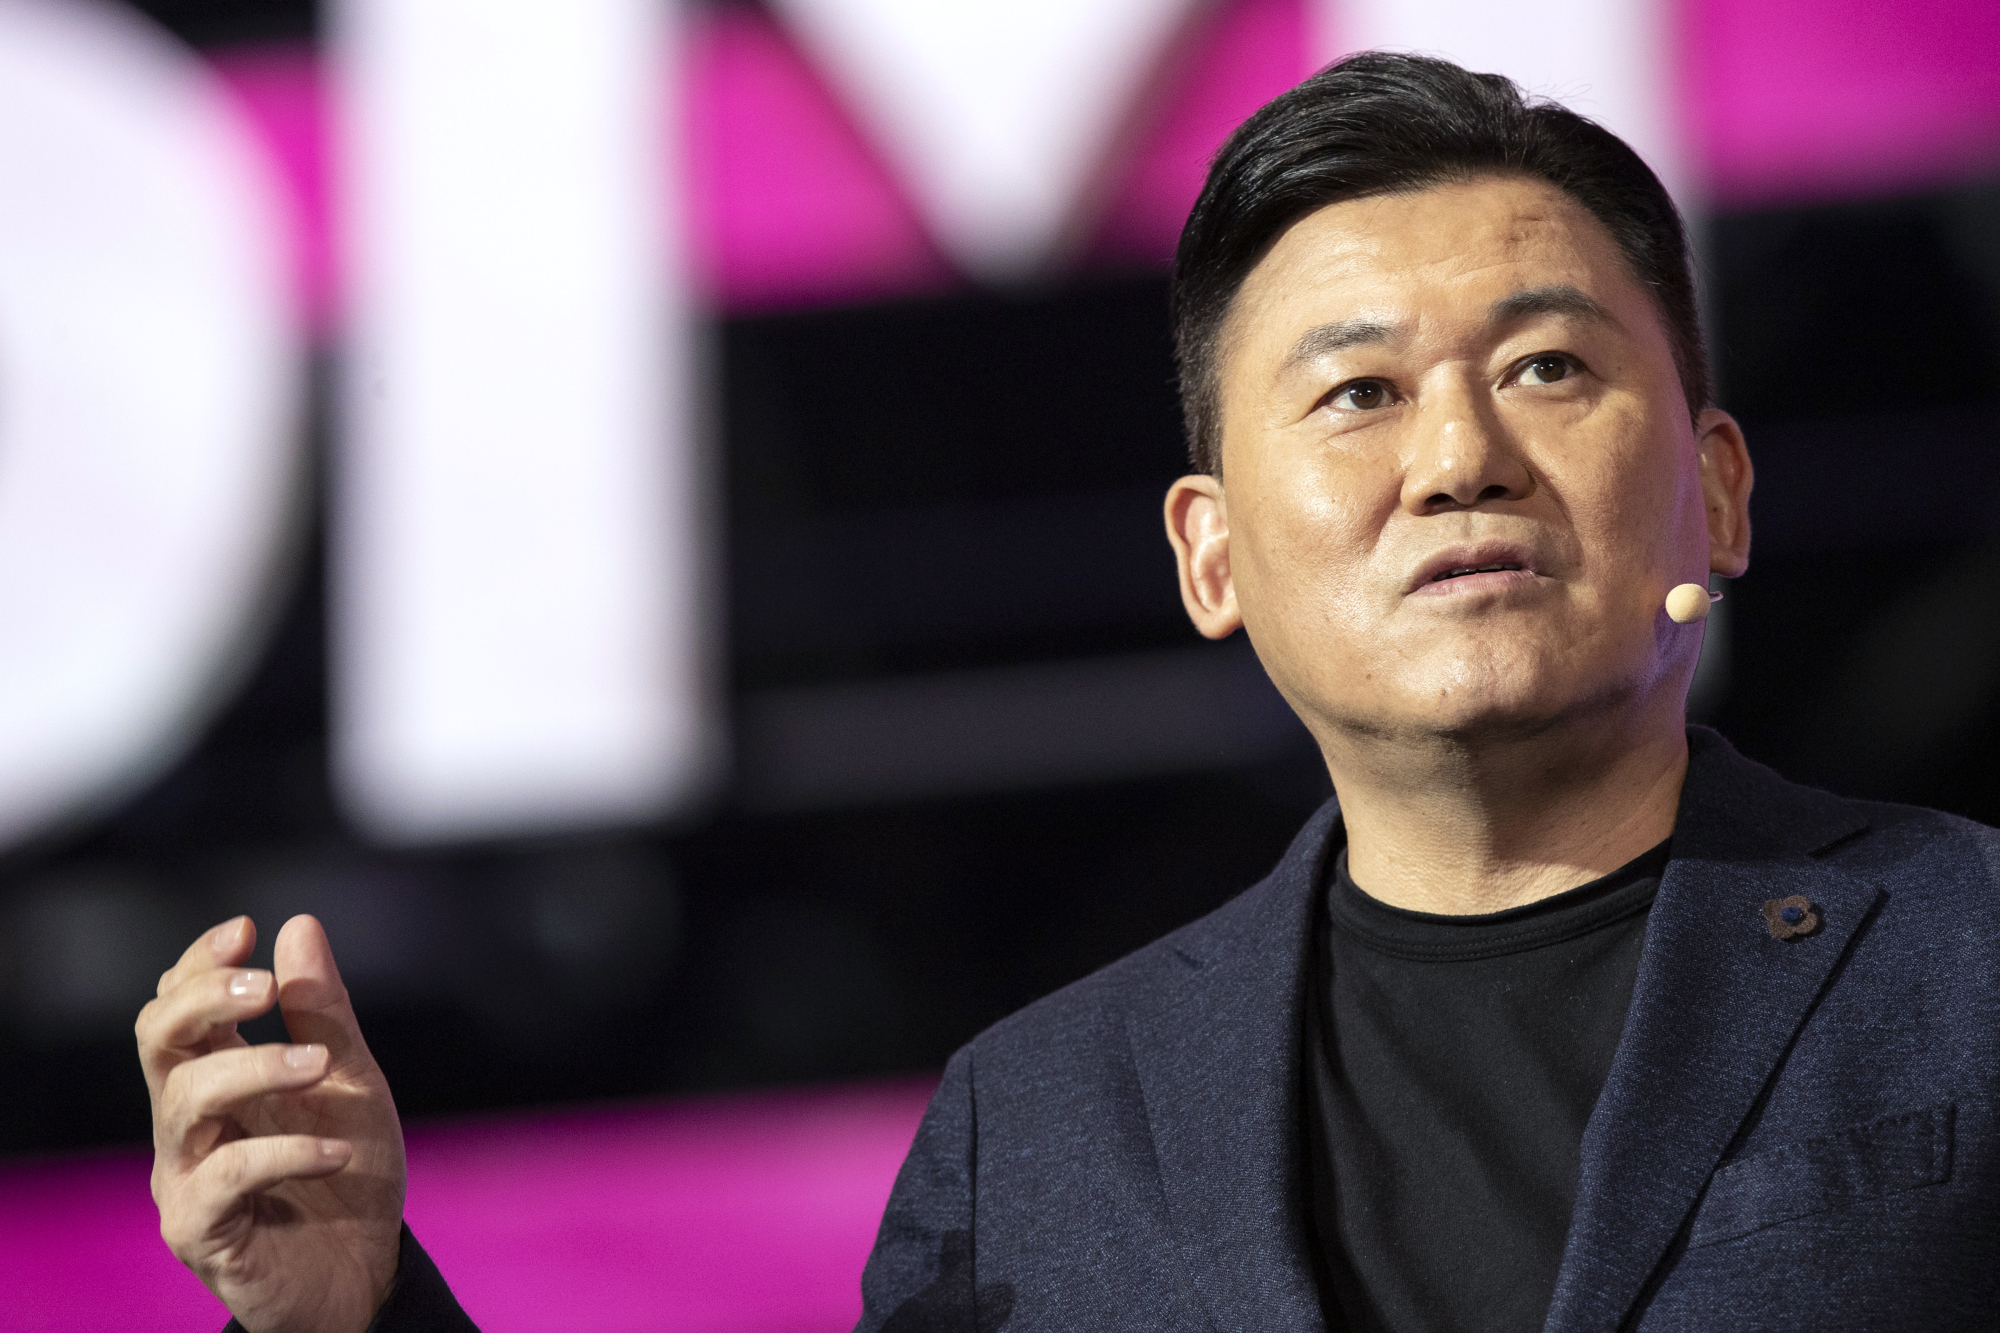 Hiroshi Mikitani, chairman and CEO of Rakuten Inc., speaks at the Rakuten Optimism conference in Yokohama on Wednesday. The business conference focusing on 5G innovation will end on Saturday. | BLOOMBERG